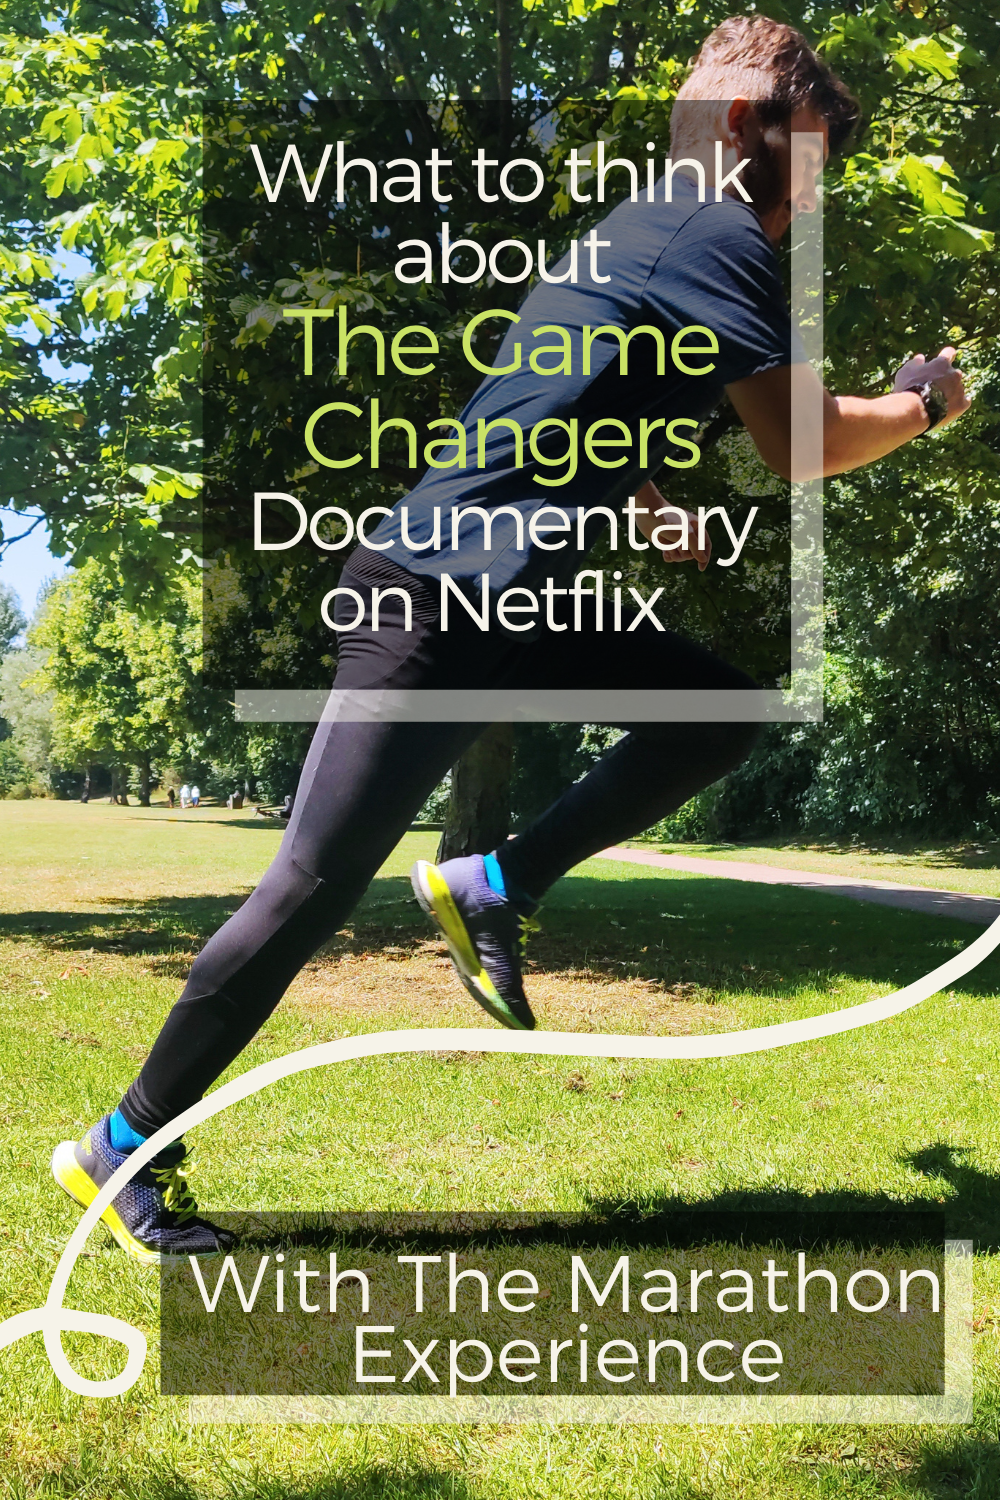 What To Think About The Game Changers Documentary On Netflix The Marathon Experience In 2020 Health And Wellness Coach Fitness Professional Documentaries